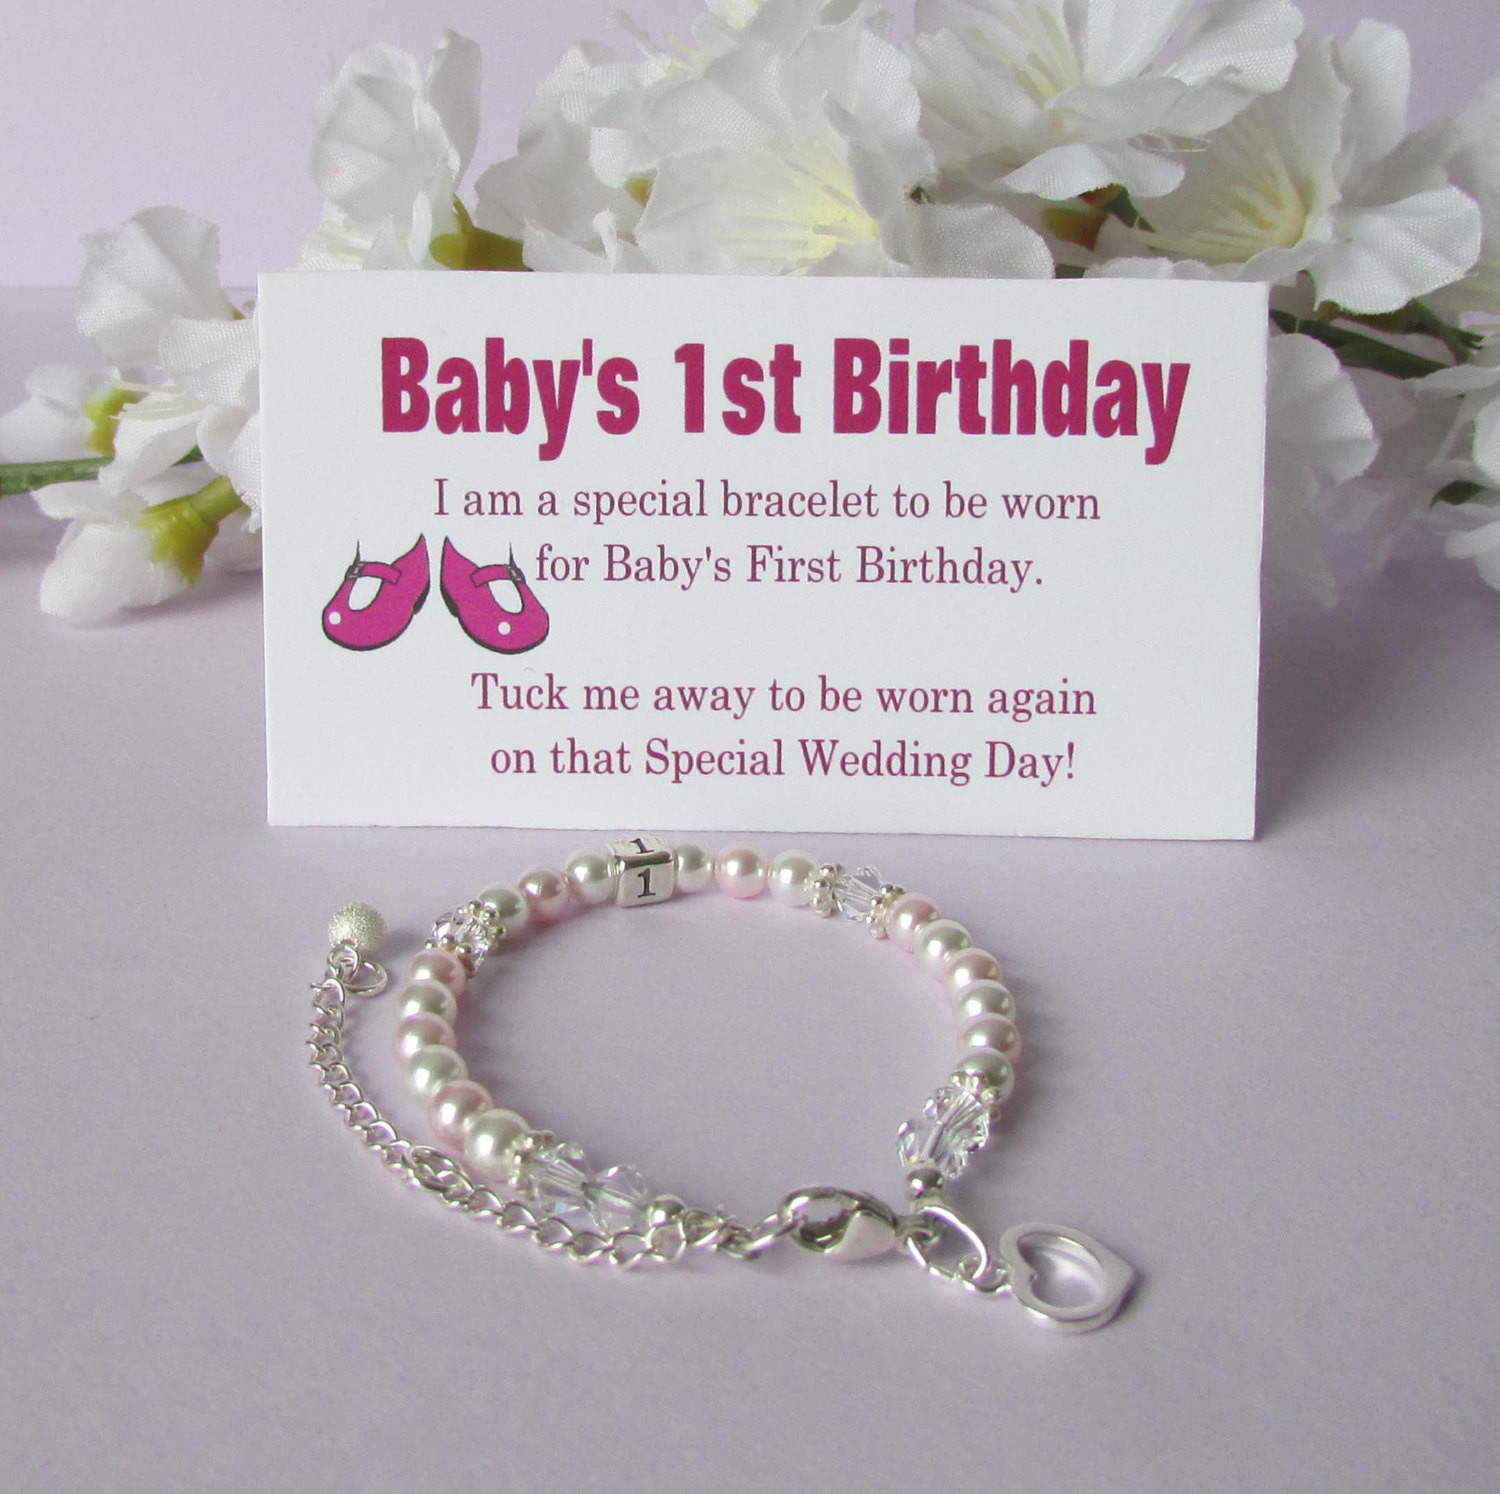 Gifts For Baby Girls First Birthday  Baby s 1st Birthday Gift Bracelet Baby to Bride Growing